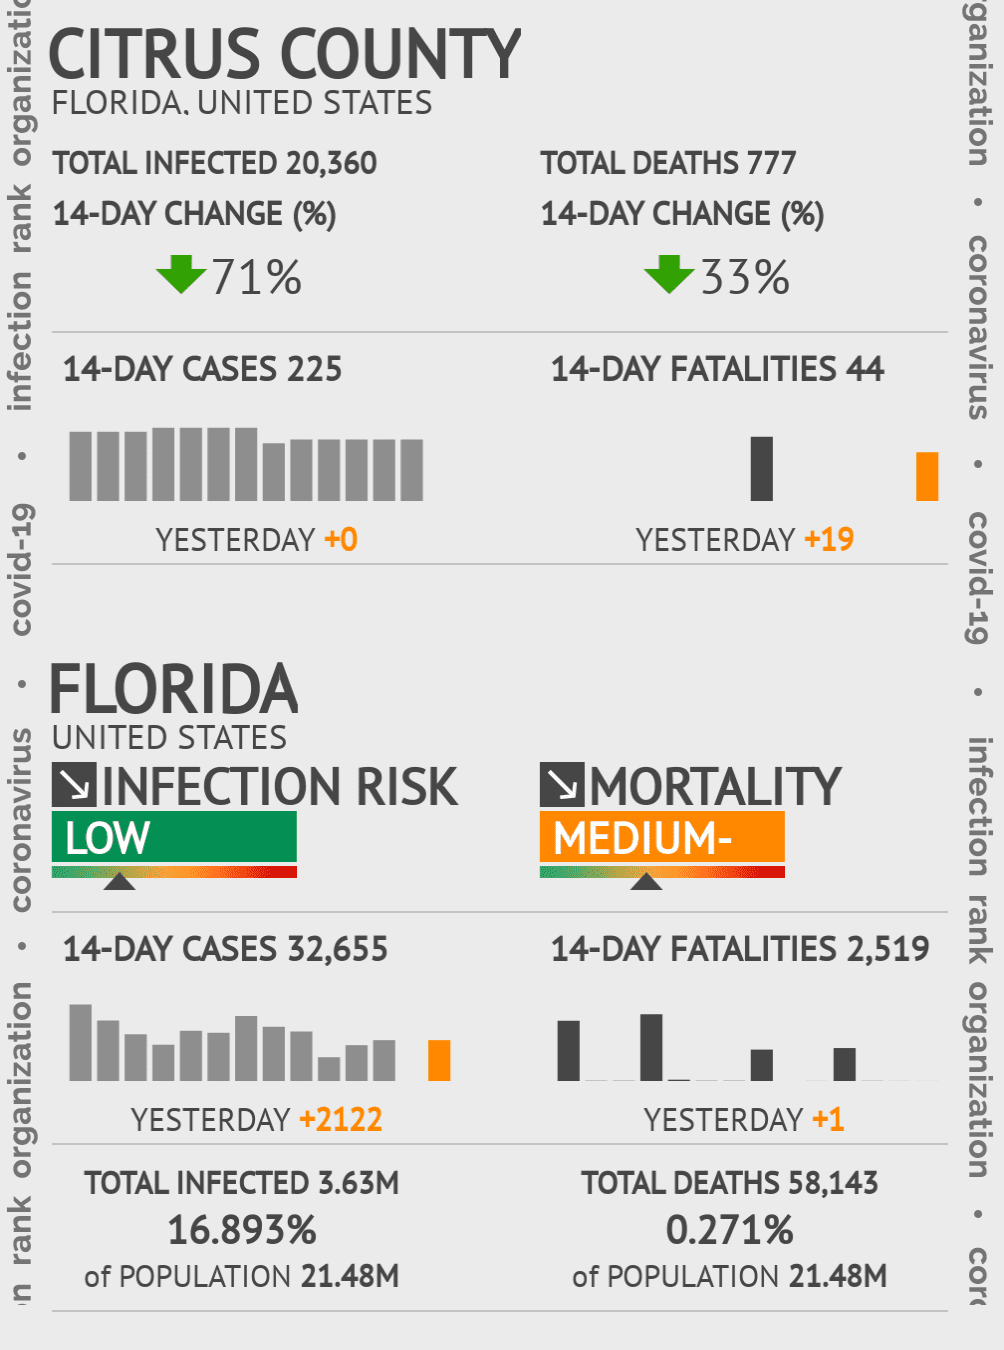 Citrus County Coronavirus Covid-19 Risk of Infection on July 24, 2021